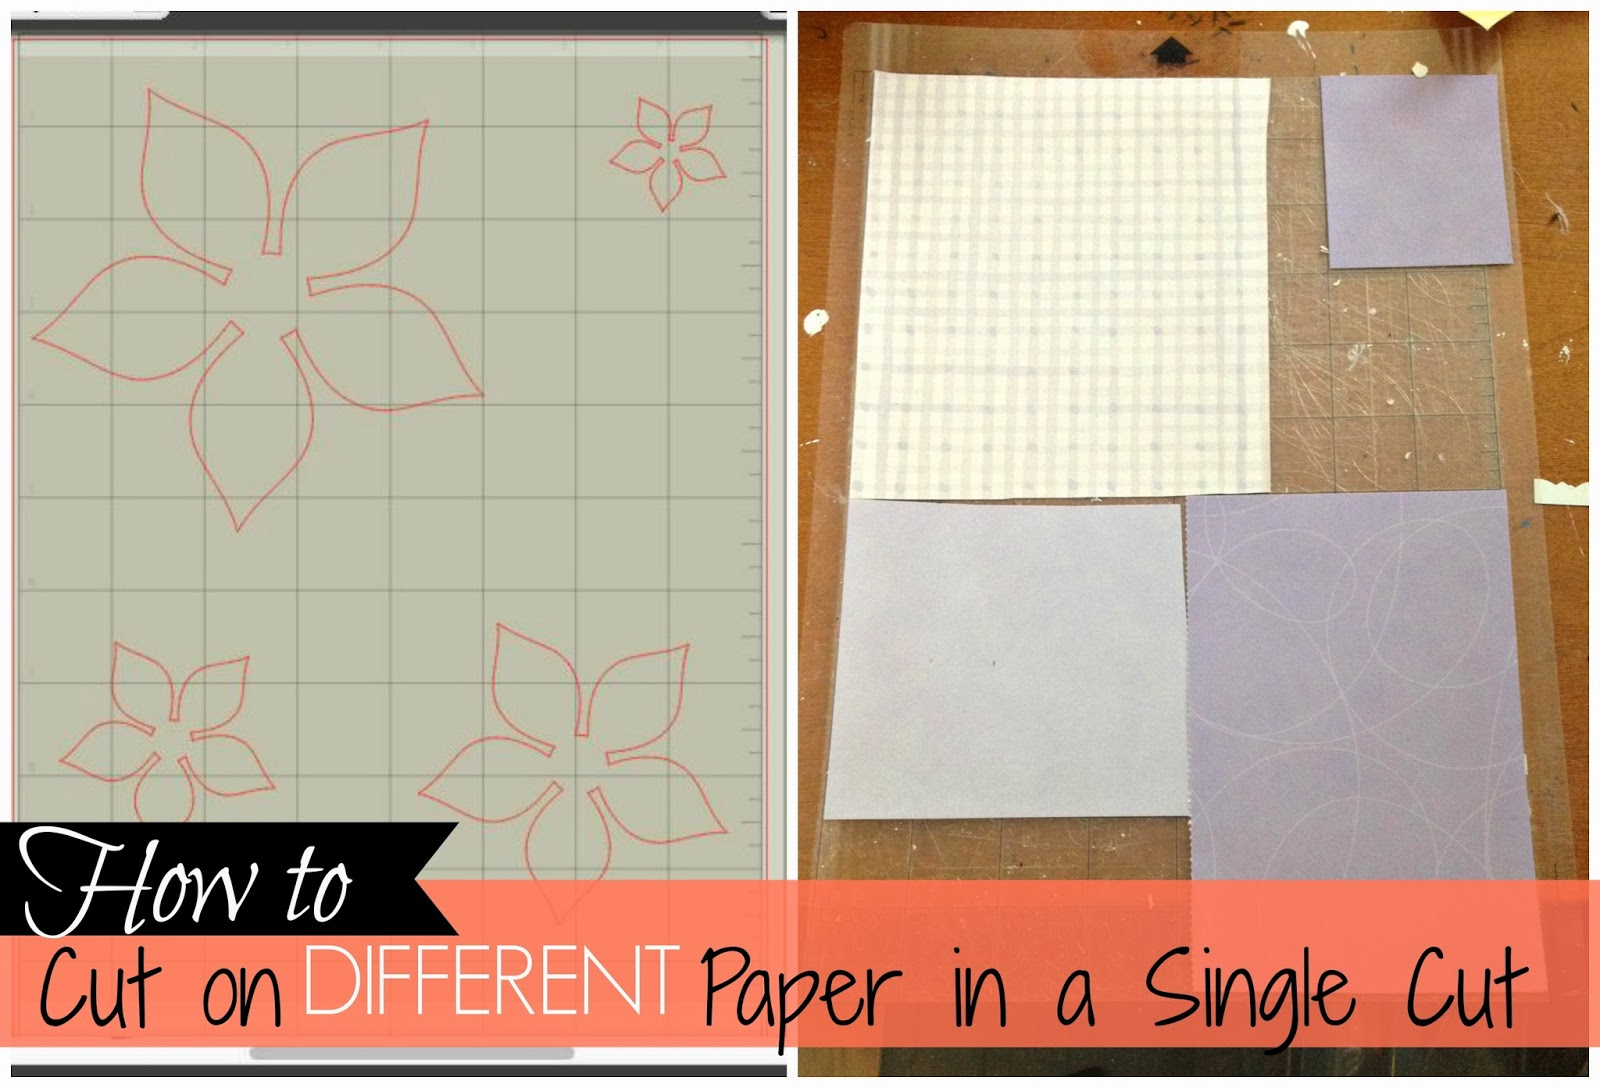 http://www.silhouetteschool.blogspot.com/2014/03/get-silhouette-to-cut-on-different.html